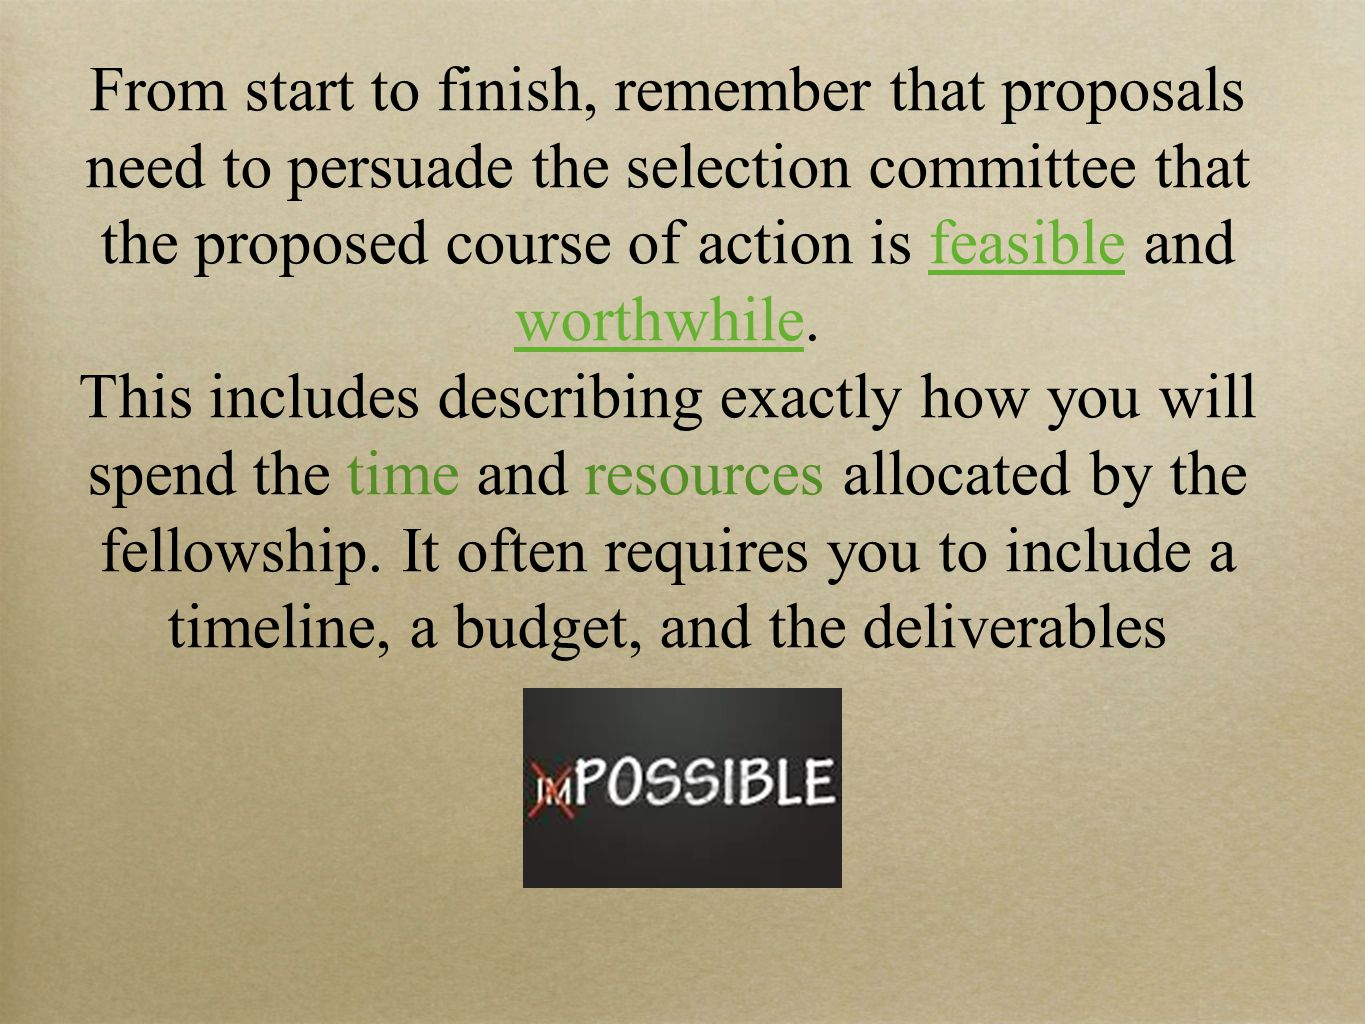 From start to finish, remember that proposals need to persuade the selection committee that the proposed course of action is feasible and worthwhile.